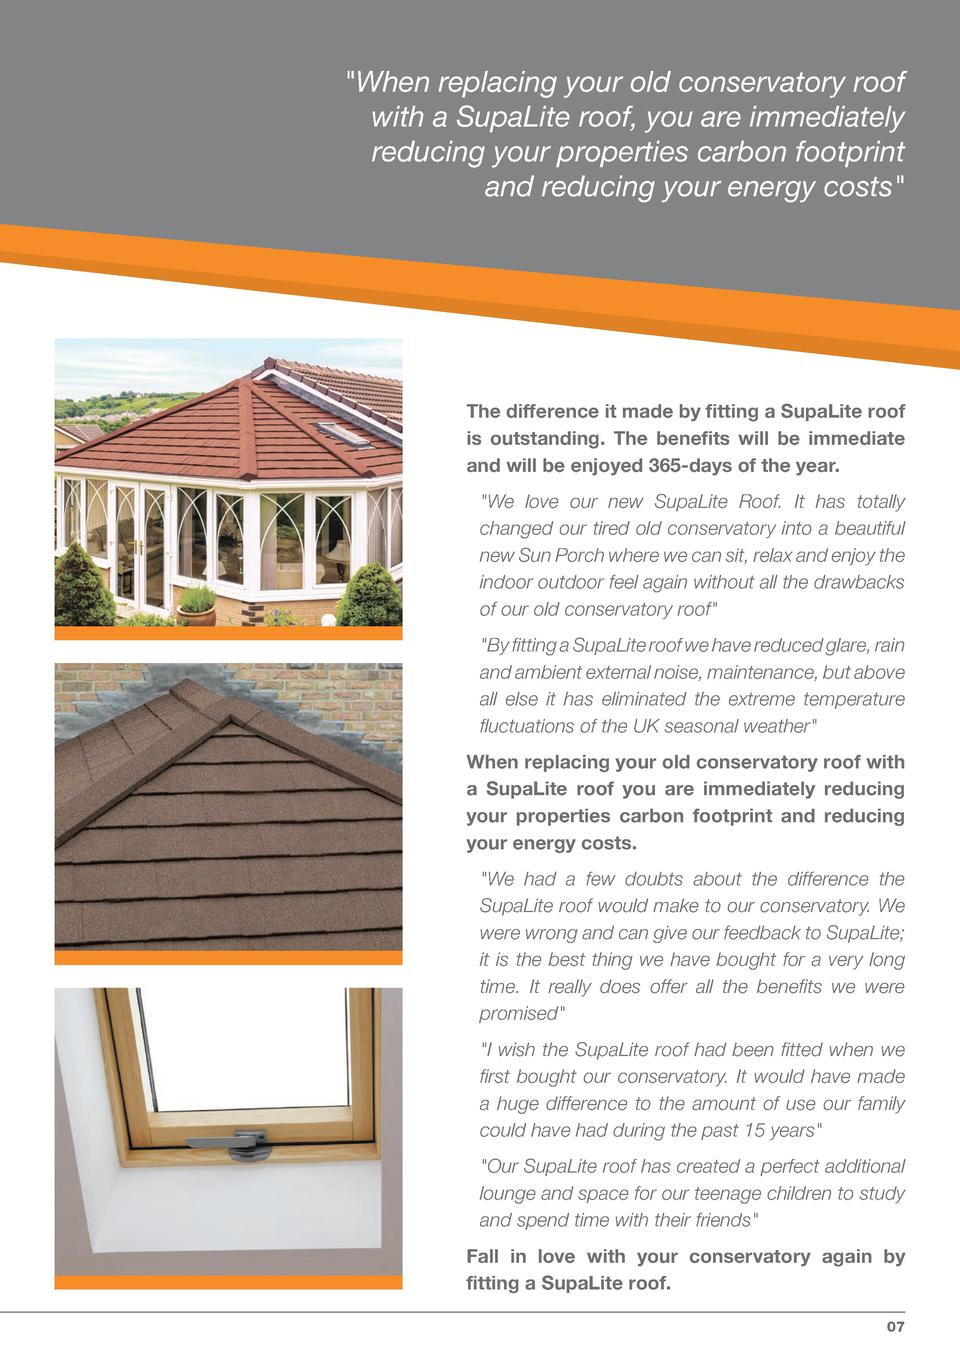 When replacing your old conservatory roof with a SupaLite roof, you are immediately reducing your properties carbon footp...